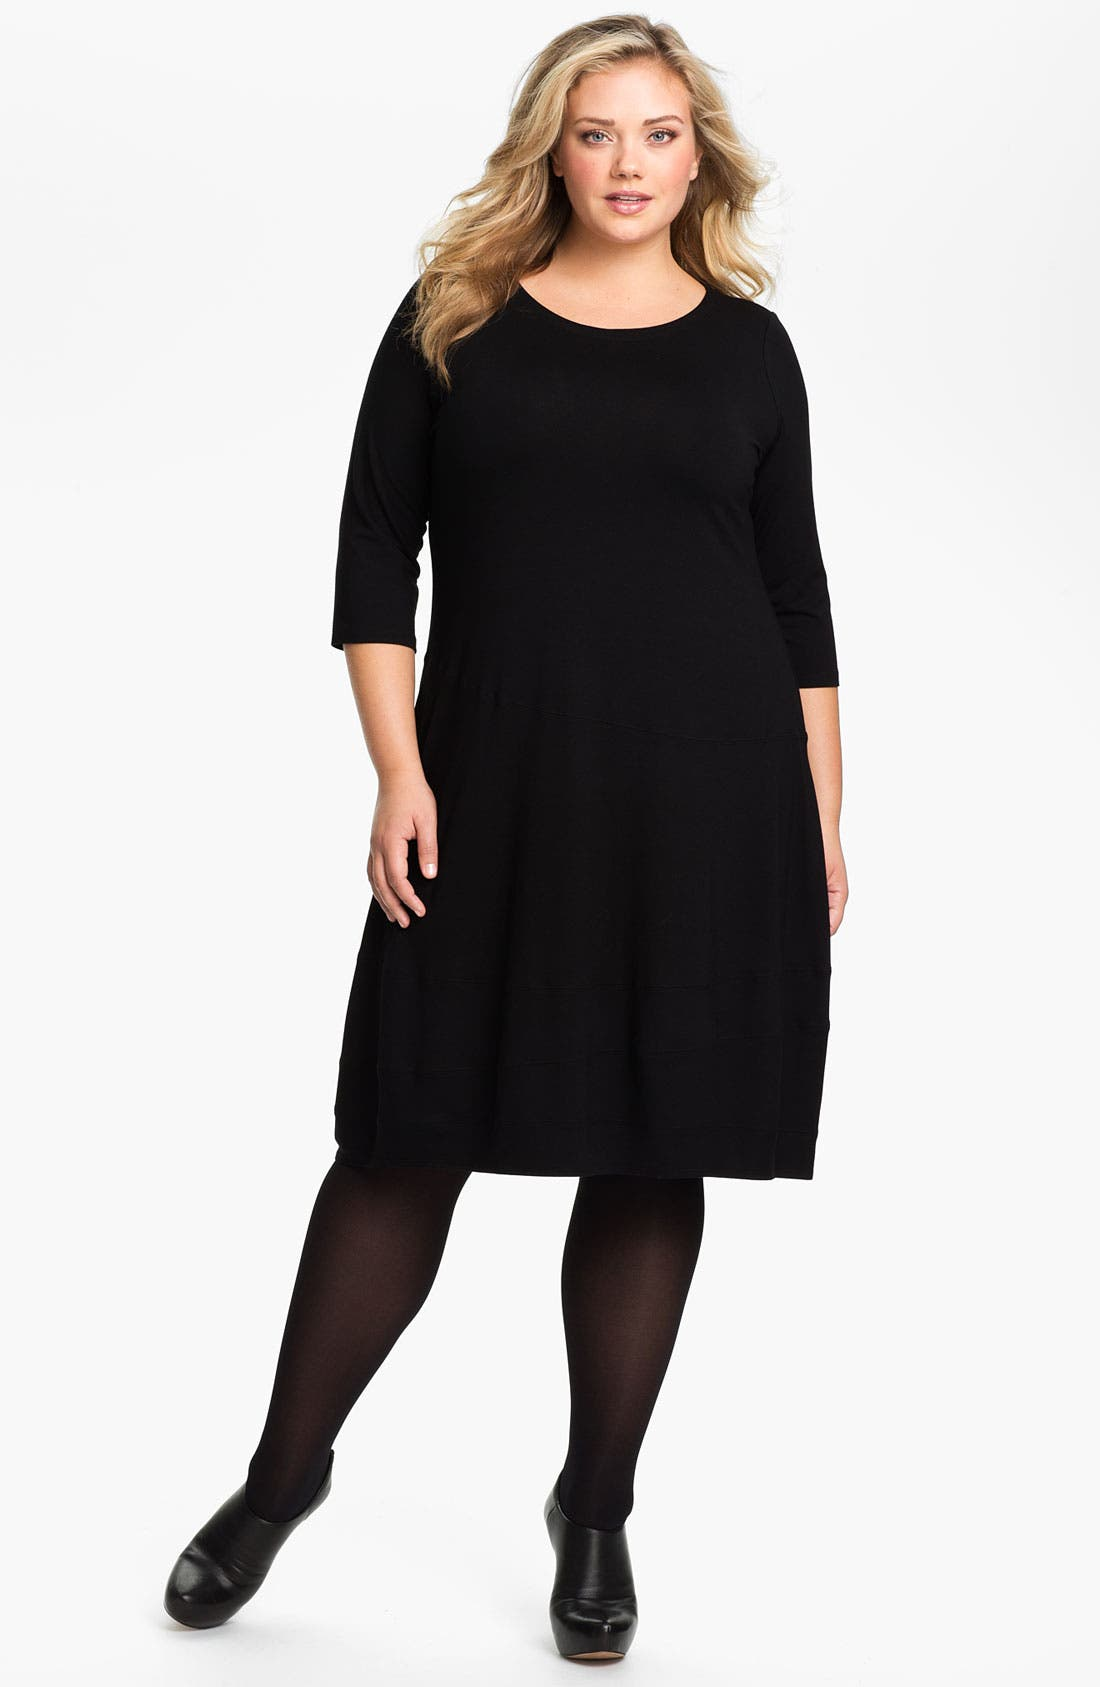 Alternate Image 1 Selected - Eileen Fisher Scoop Neck Knit Dress (Plus)